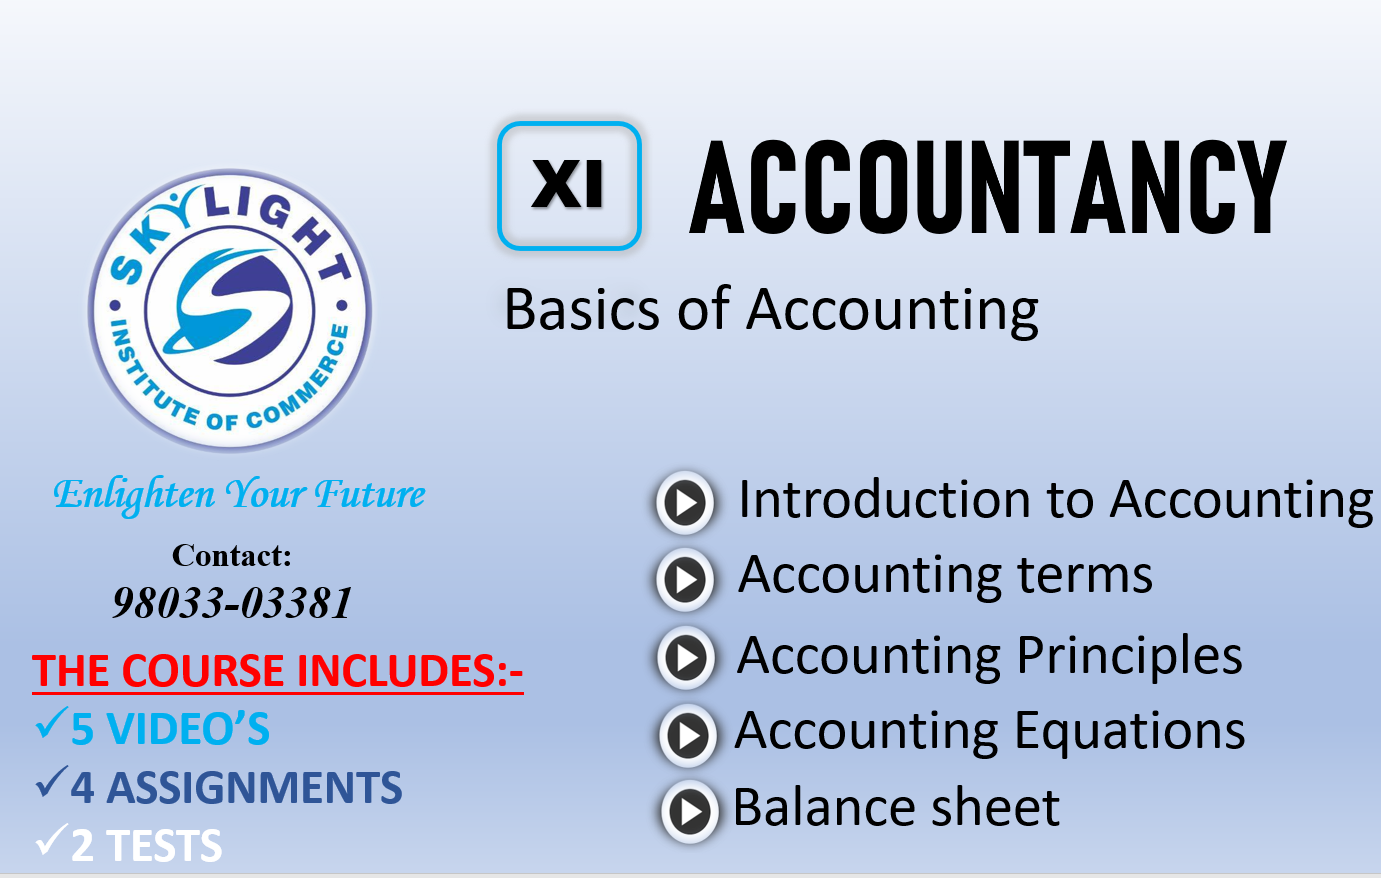 SKYLIGHT INSTITUTE OF COMMERCE, 11th Accounts, XI Accounts